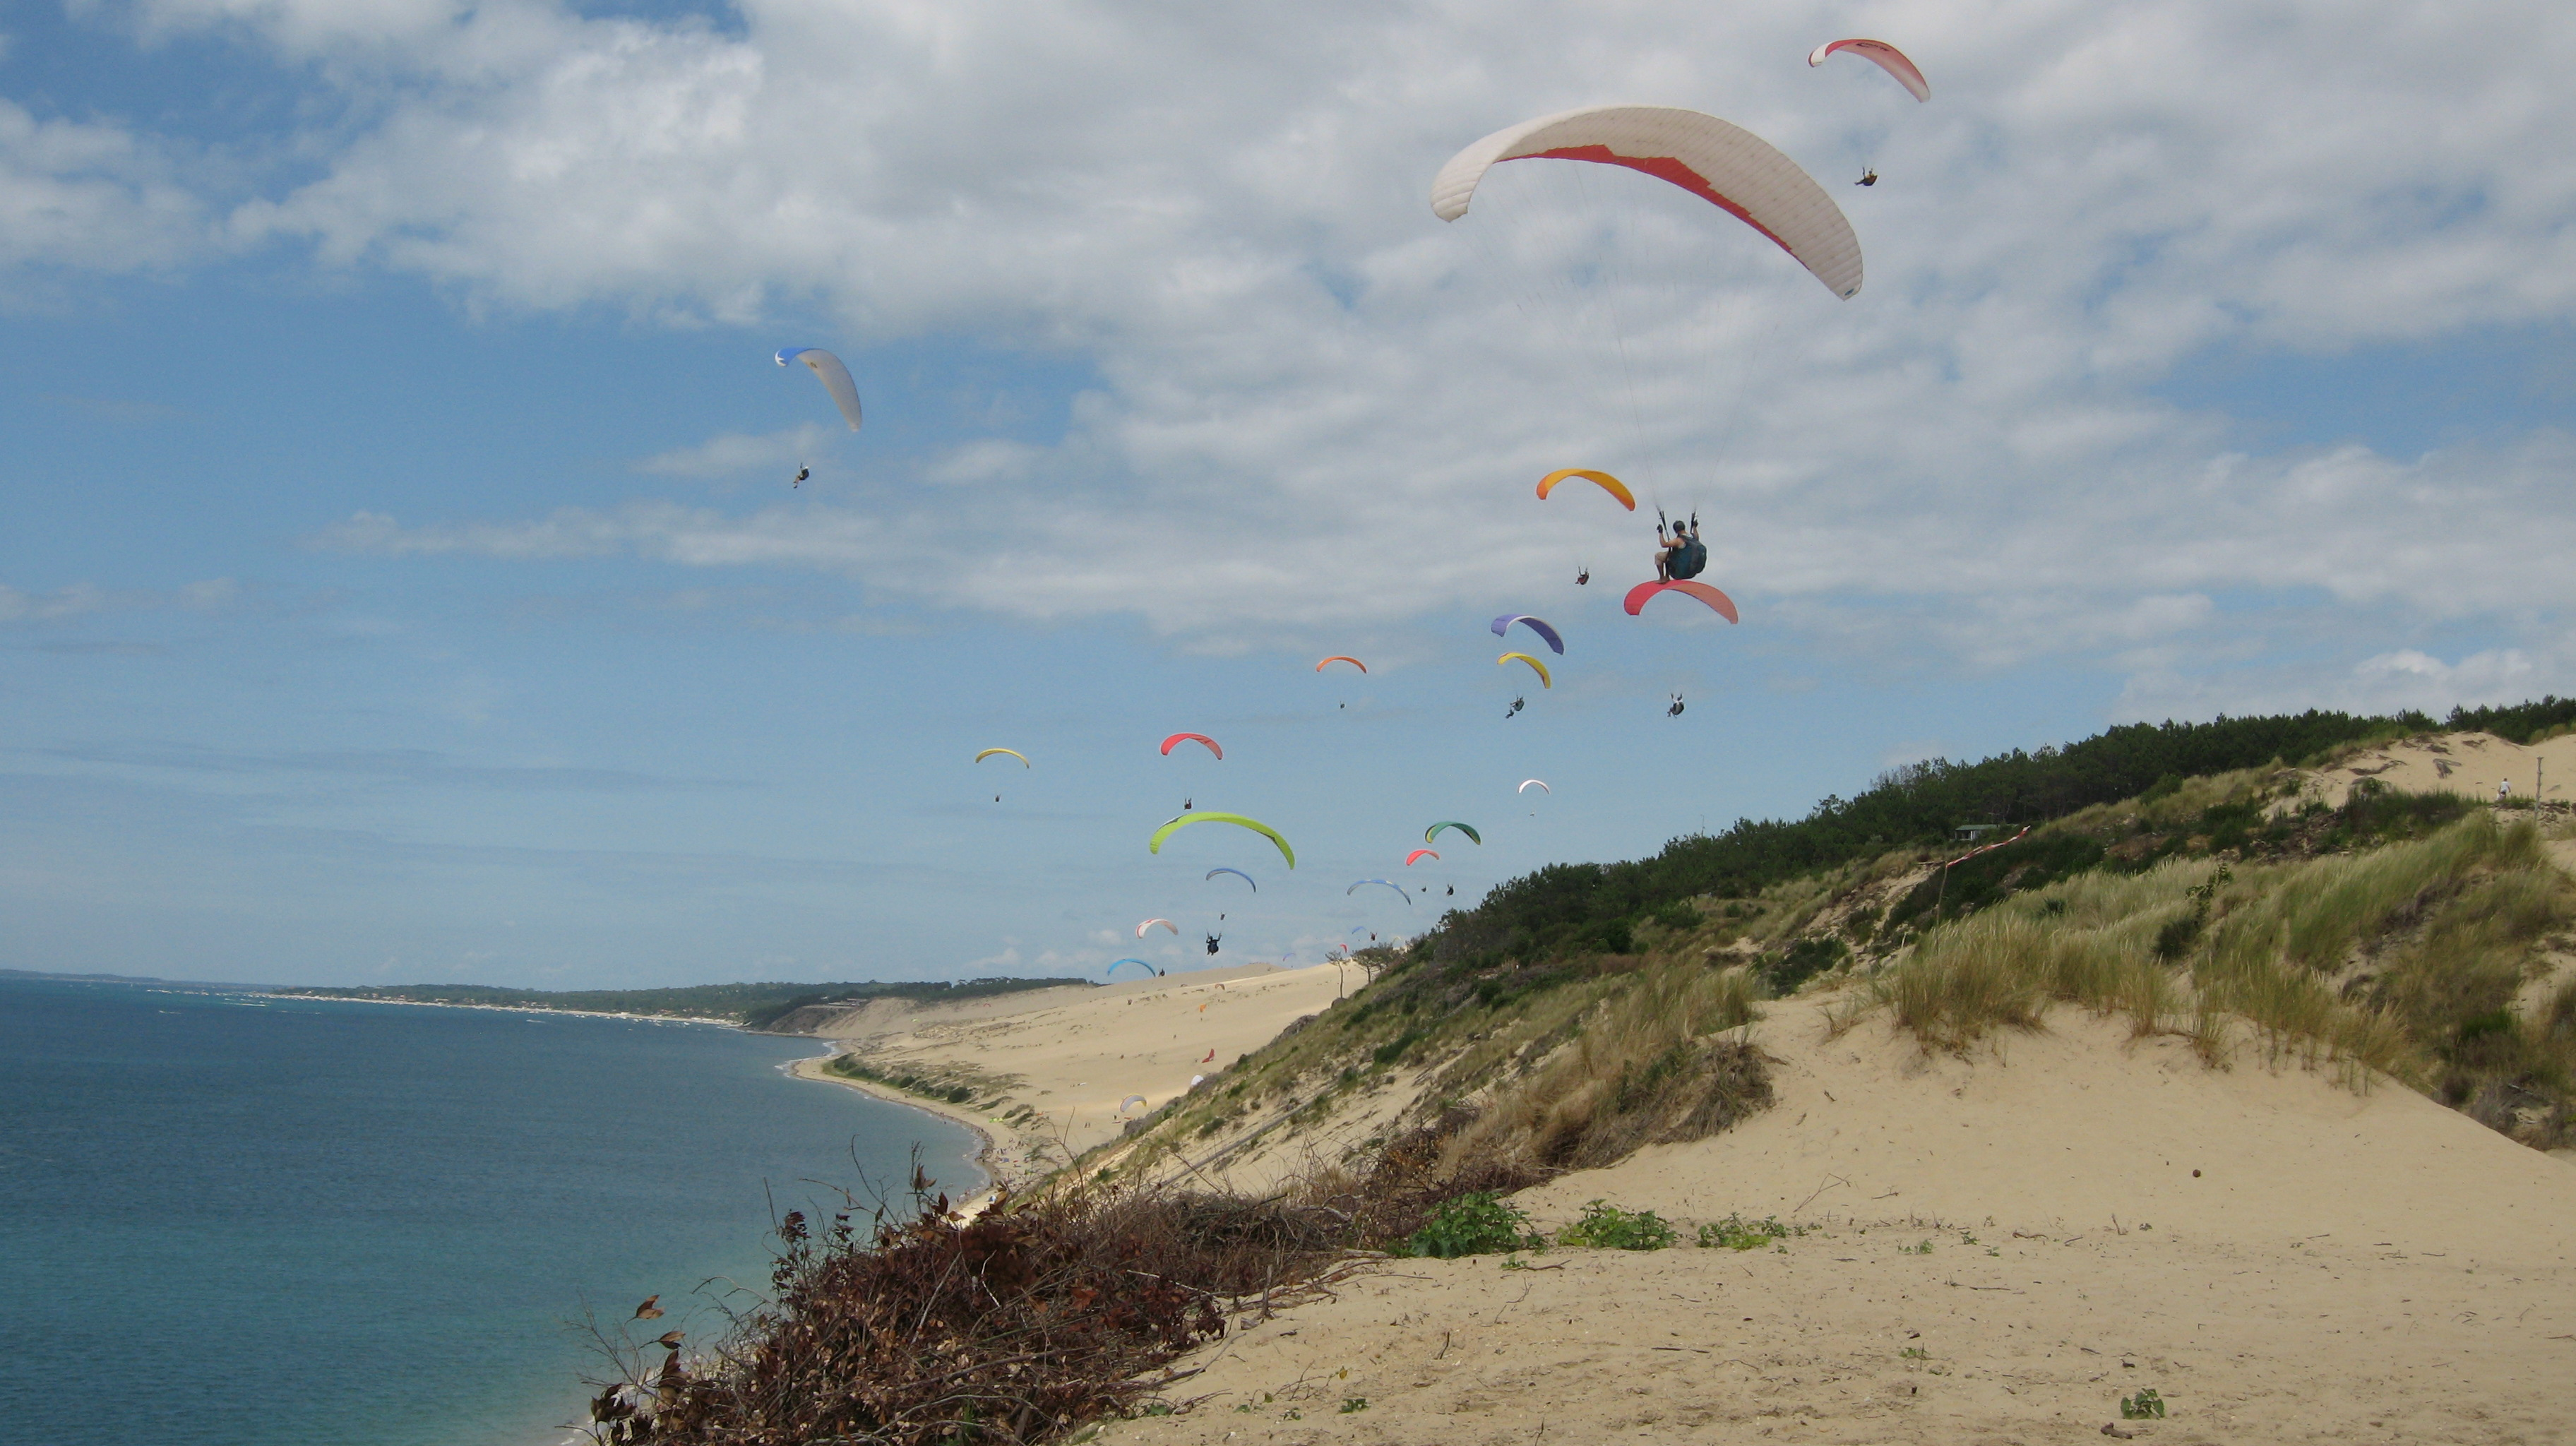 juin 2011 la dune du pyla lyon parapente. Black Bedroom Furniture Sets. Home Design Ideas